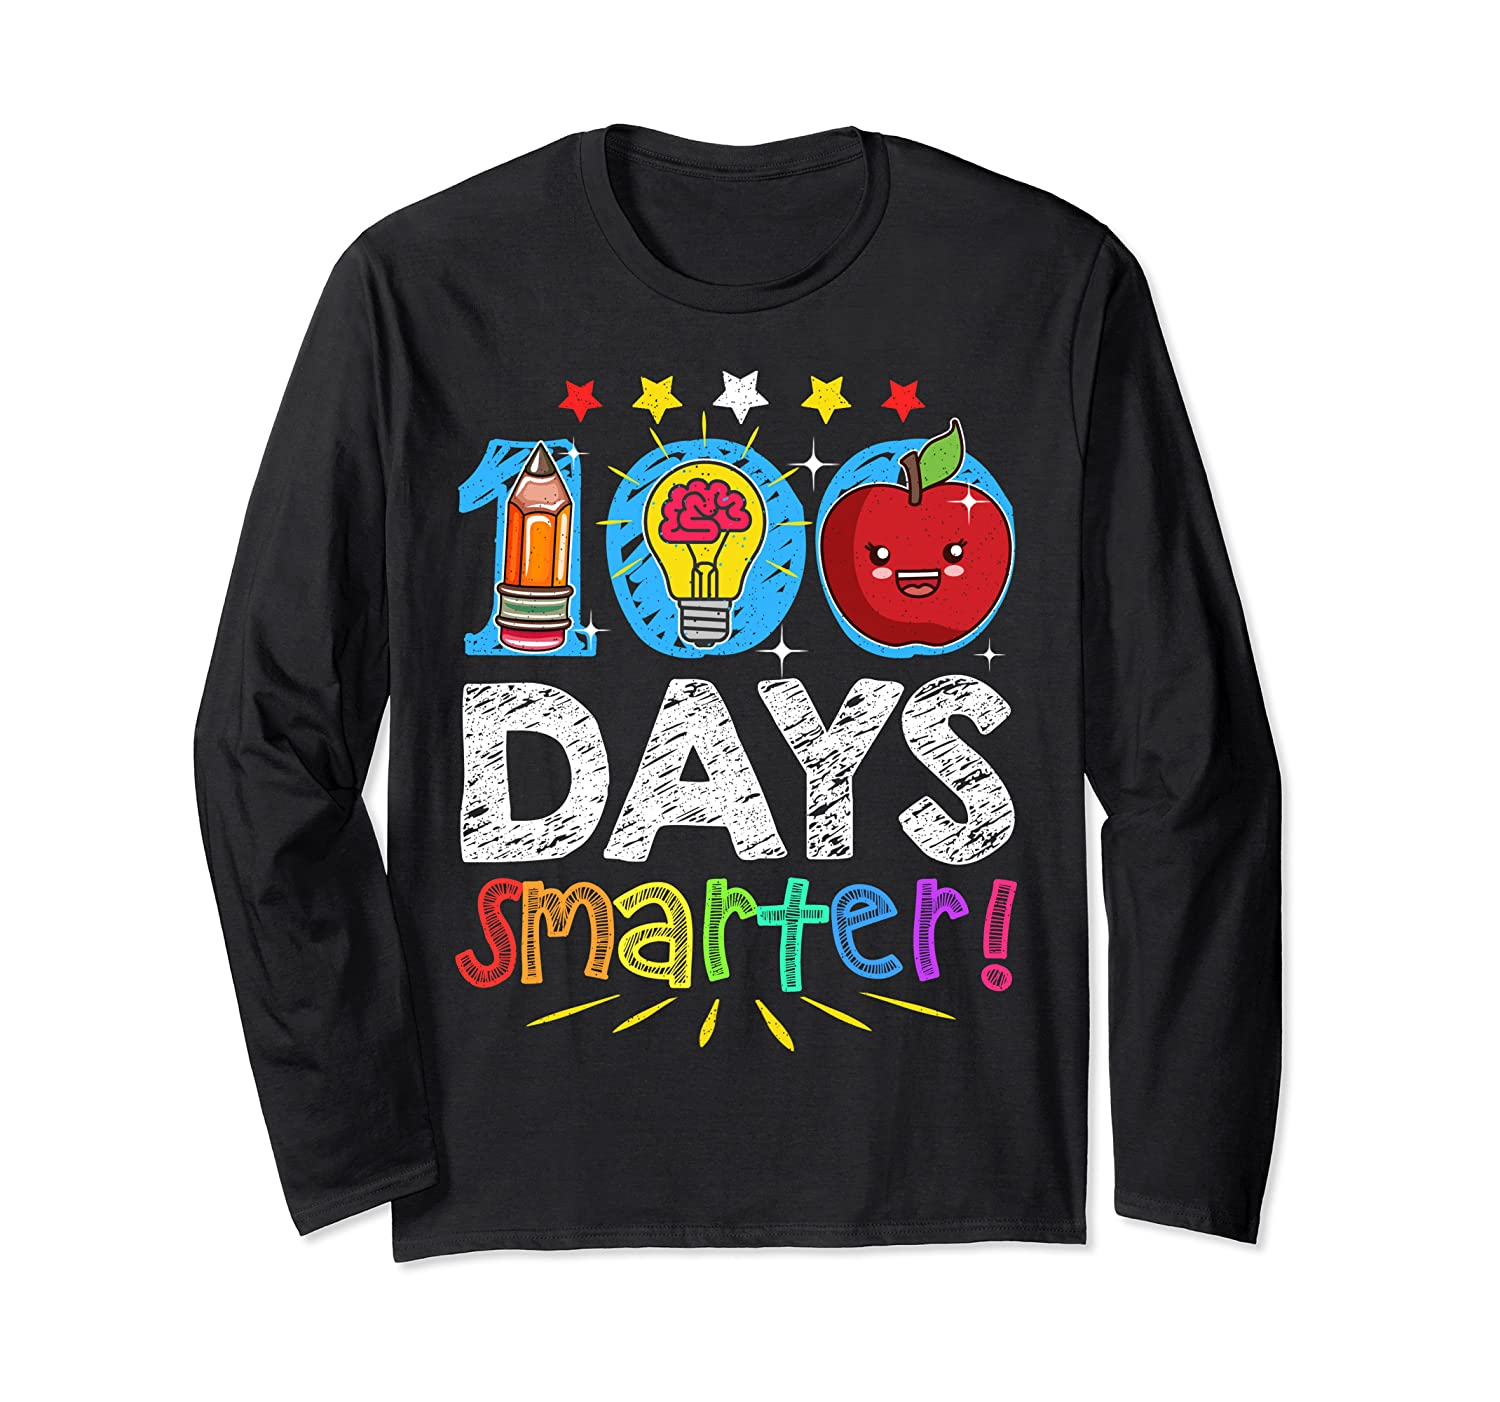 100 Days Smarter Funny Tee Happy 100th Day of School Gifts Long Sleeve T-Shirt-Awarplus